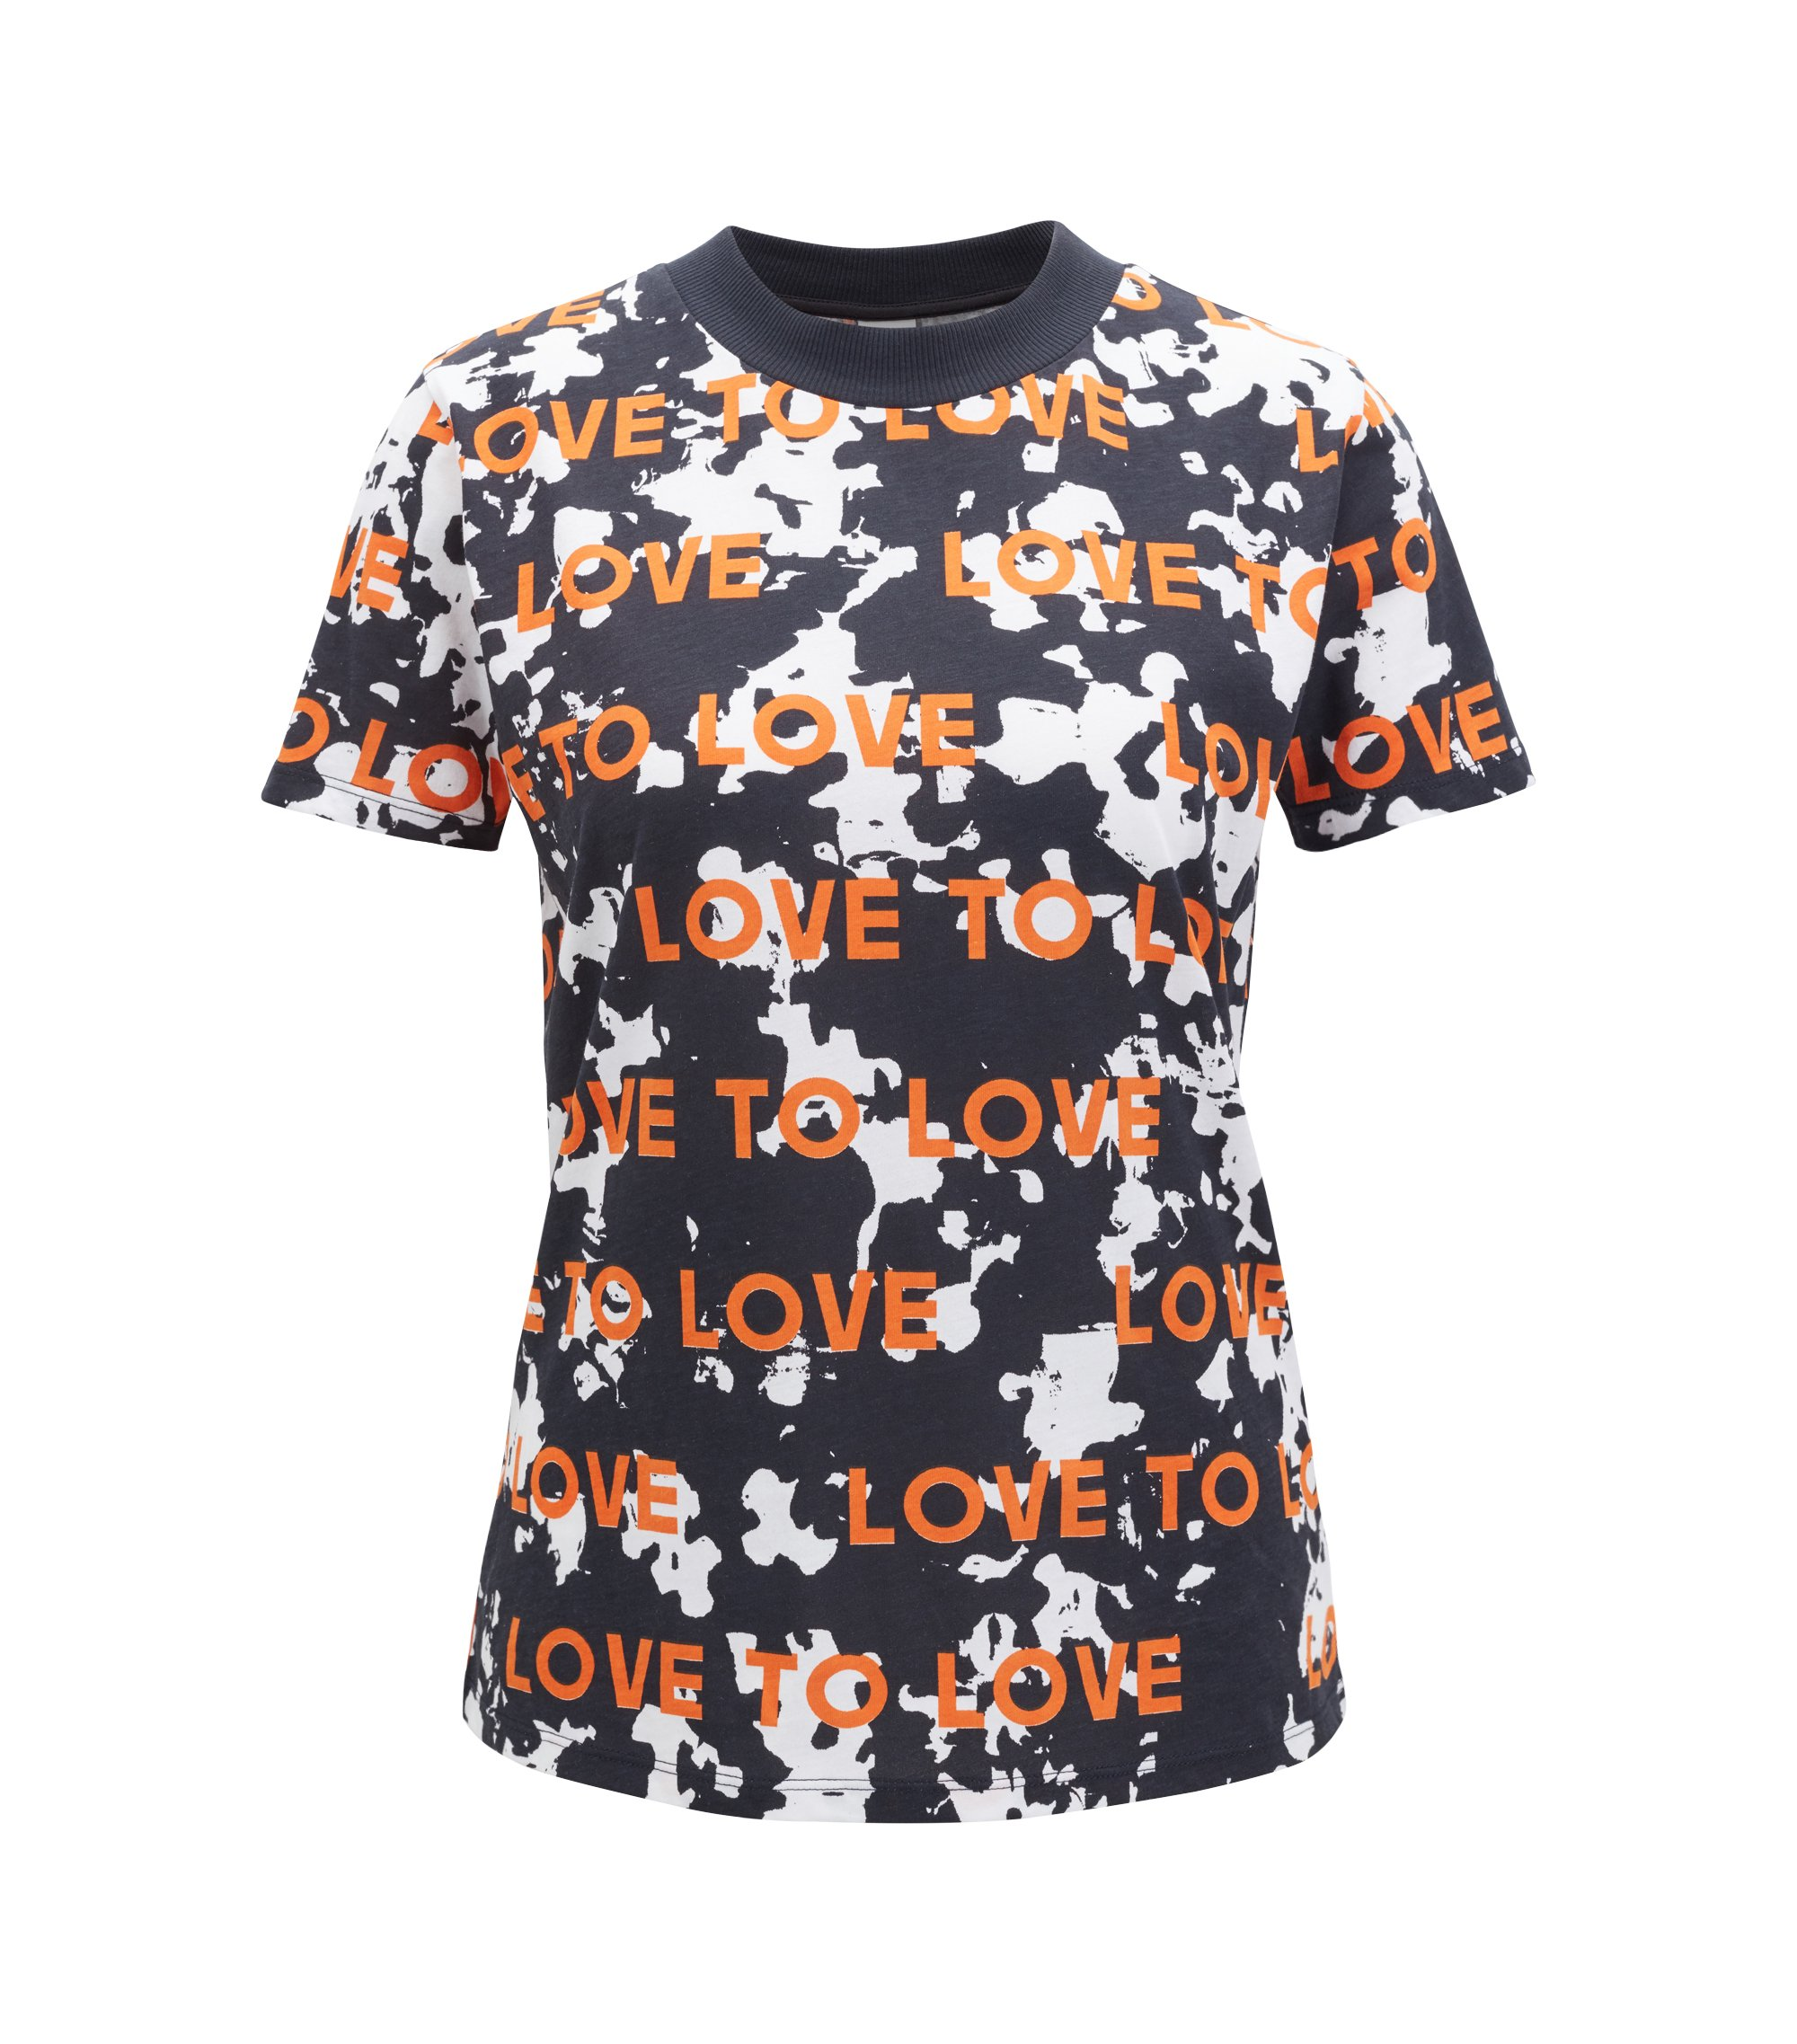 Relaxed-fit patterned T-shirt with slogan motif, Patterned